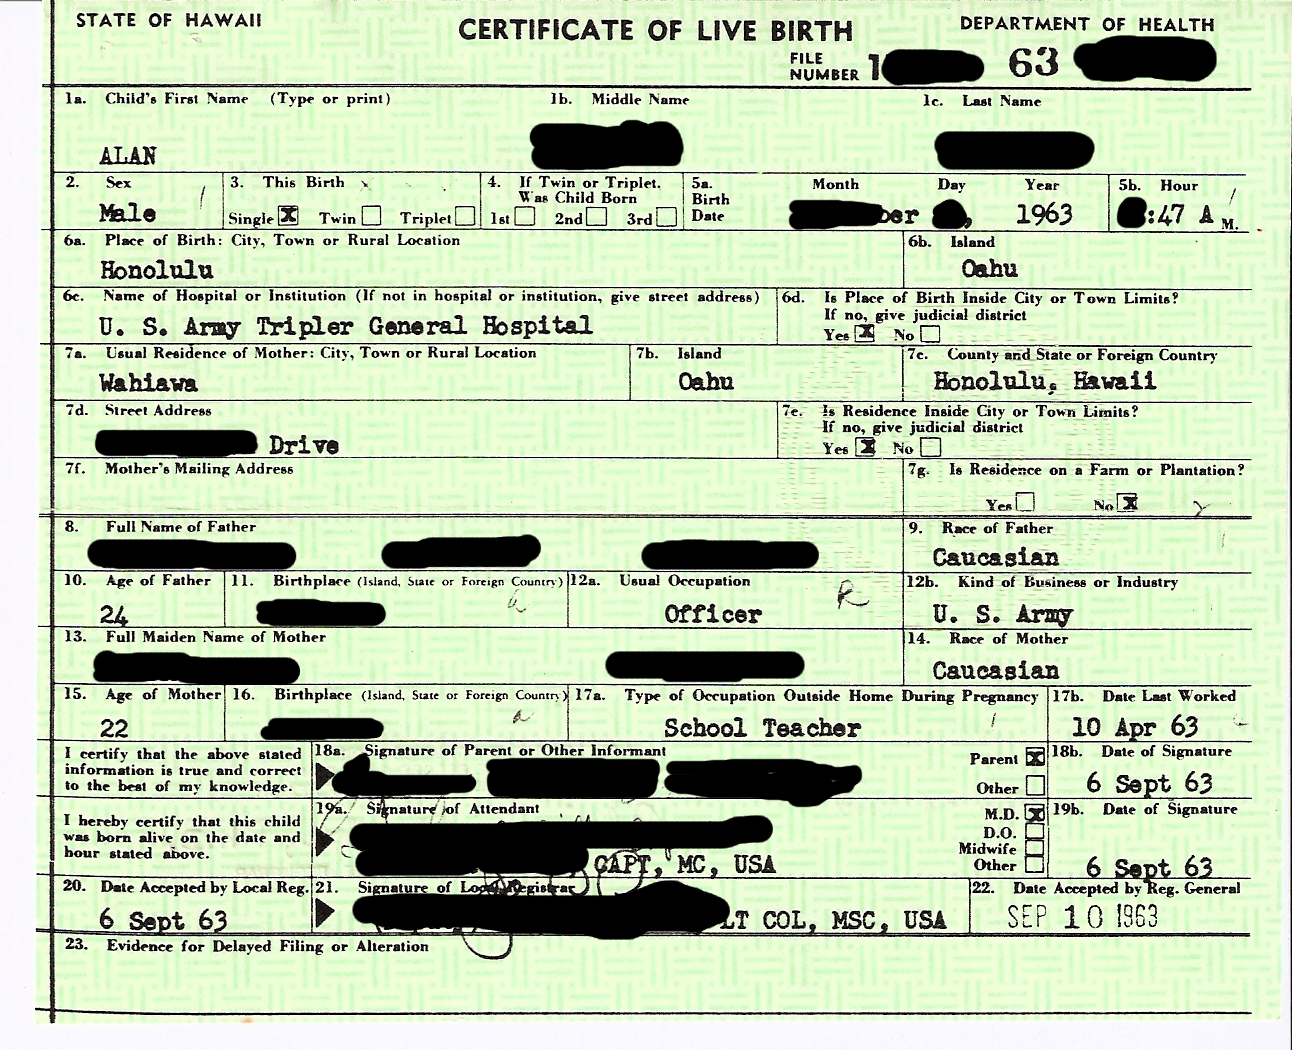 Hawaii birth certificate 1963 snarkybytes update this is a certified copy xflitez Images